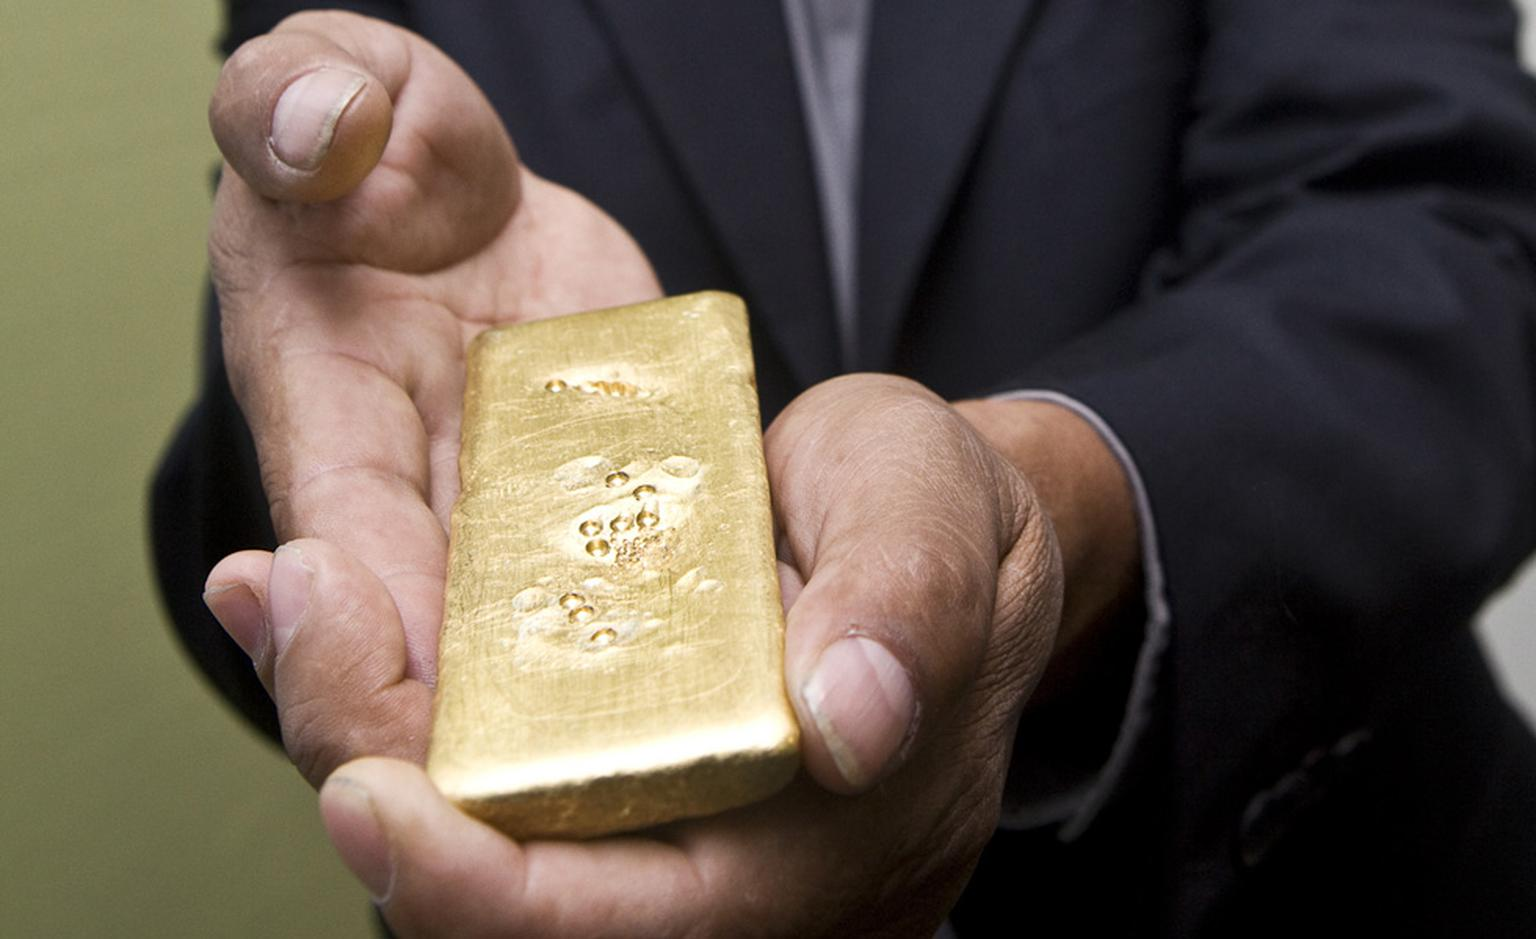 The first ingot of Fairtrade gold